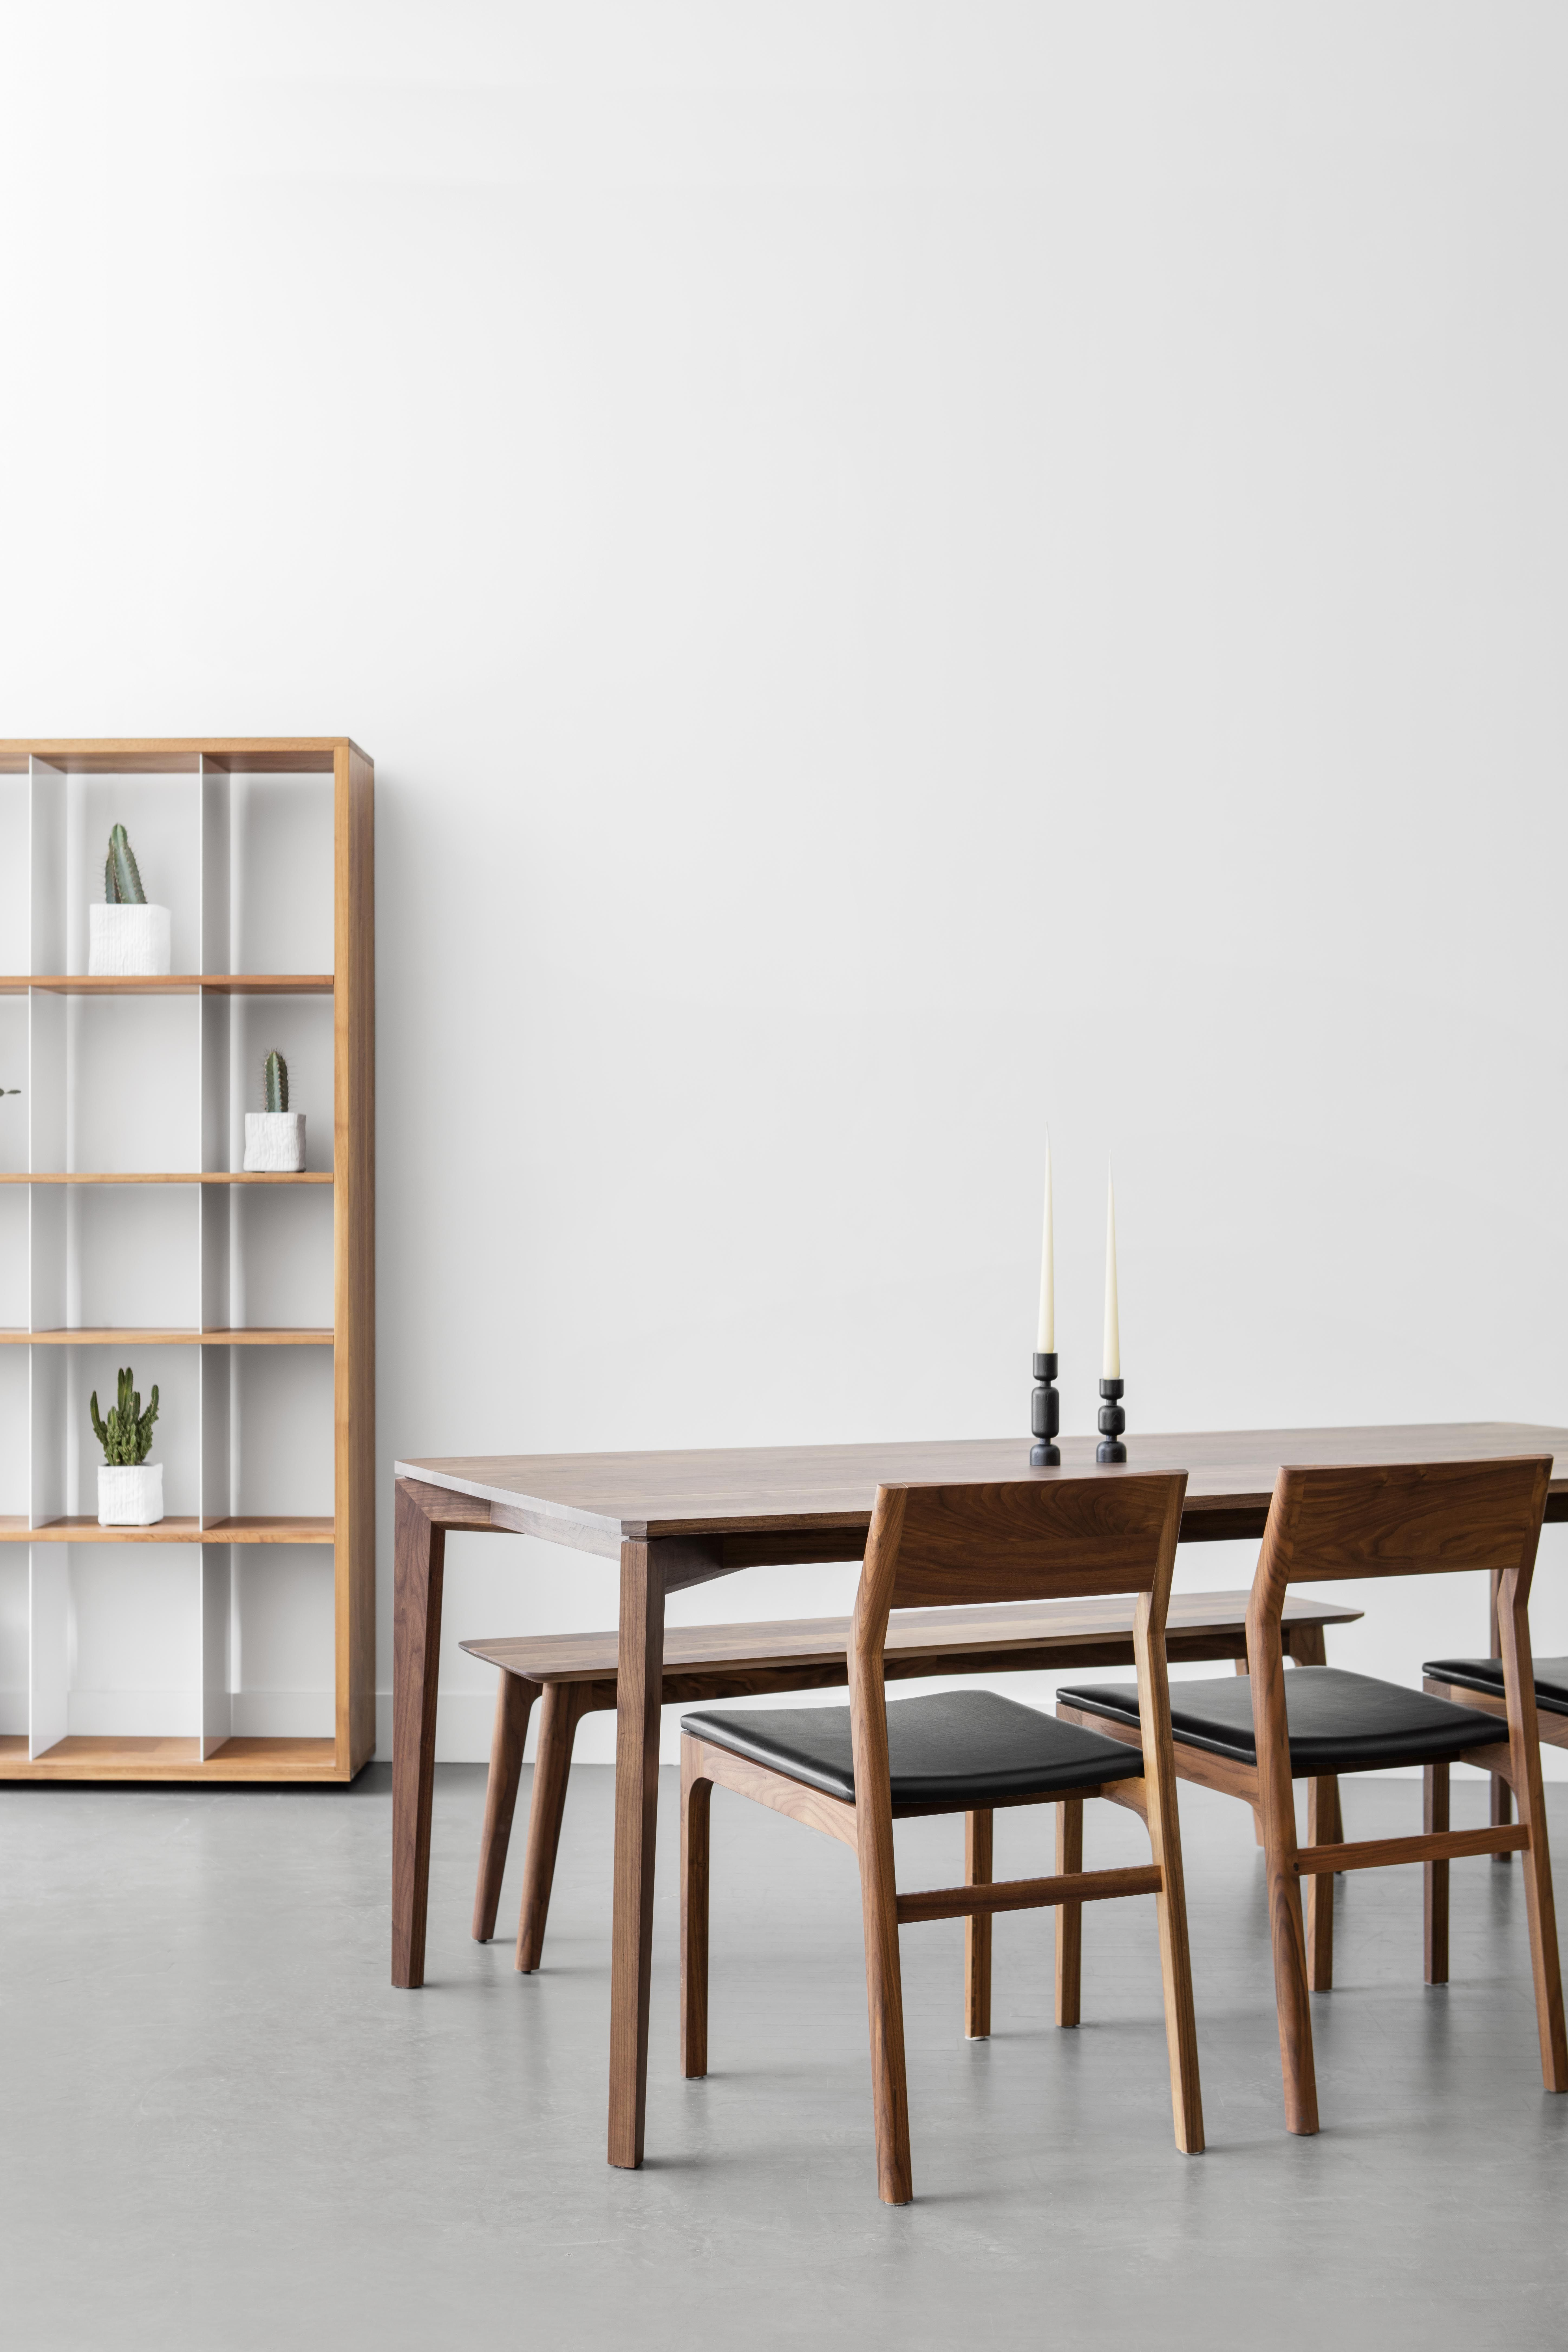 Dining set with our T110 table C205 chairs and S304 bookshelf in